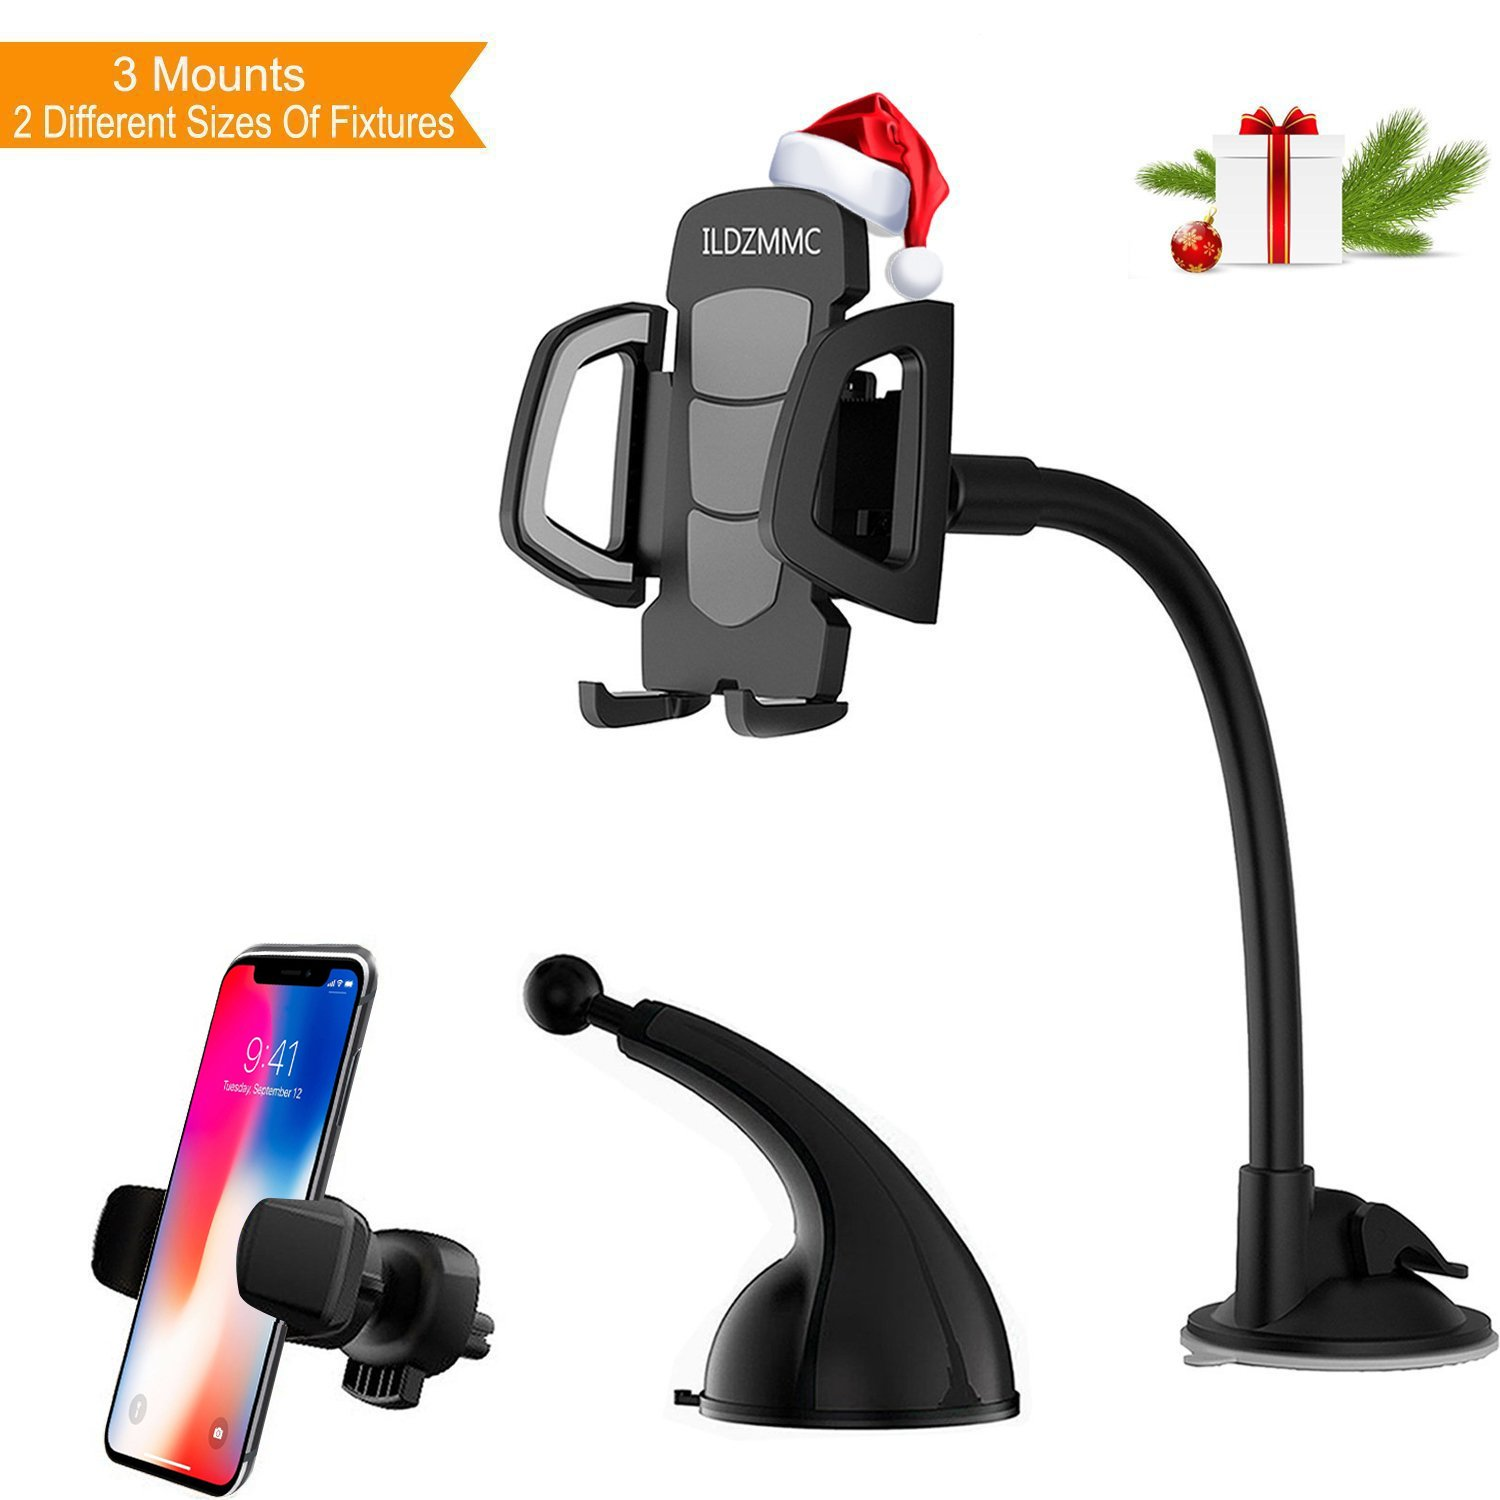 ILDZMMC Car Phone Mount, 3-in-1 Universal Phone Holder For Car Dashboard Windshield Mount Air Vent Car Phone Holder for iPhone X/8/8P/7/6/6S, Samsung Galaxy S5/S6/S7/S8 LG Huawei and More (Black)